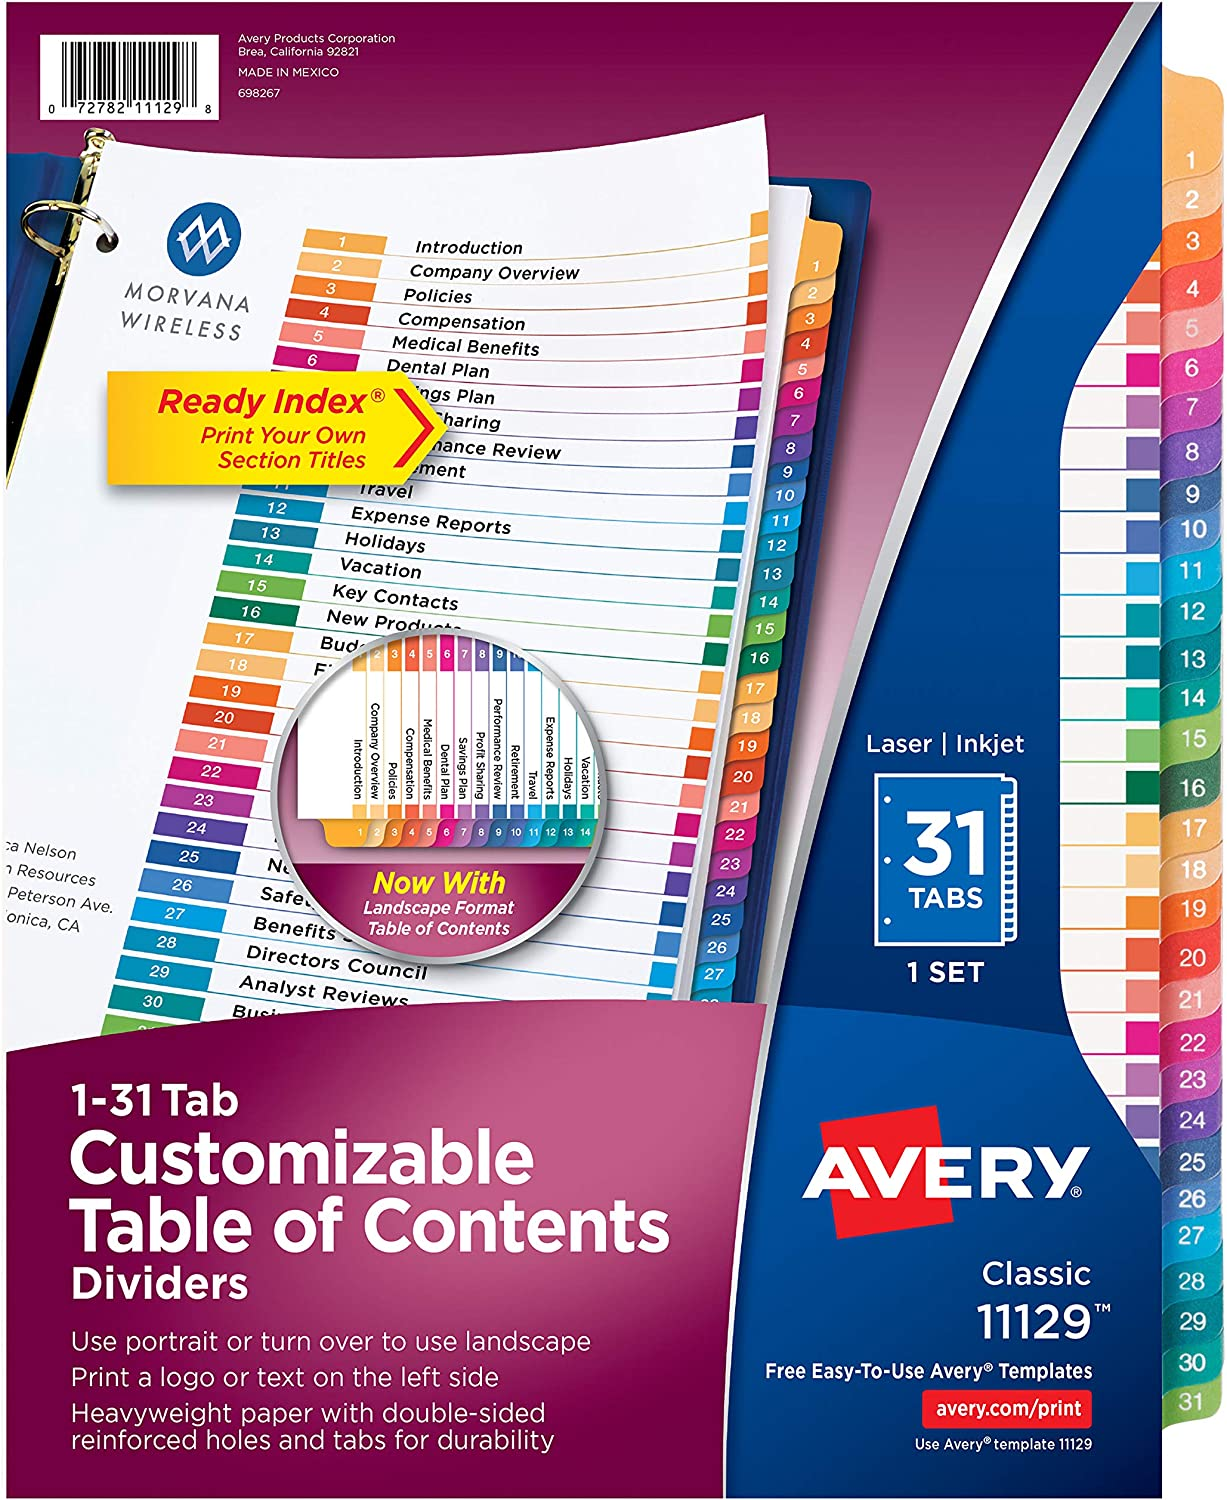 Avery 31-Tab Dividers for 3 Ring Binders, Customizable Table of Contents, Multicolor Tabs, 12 Sets (11129)